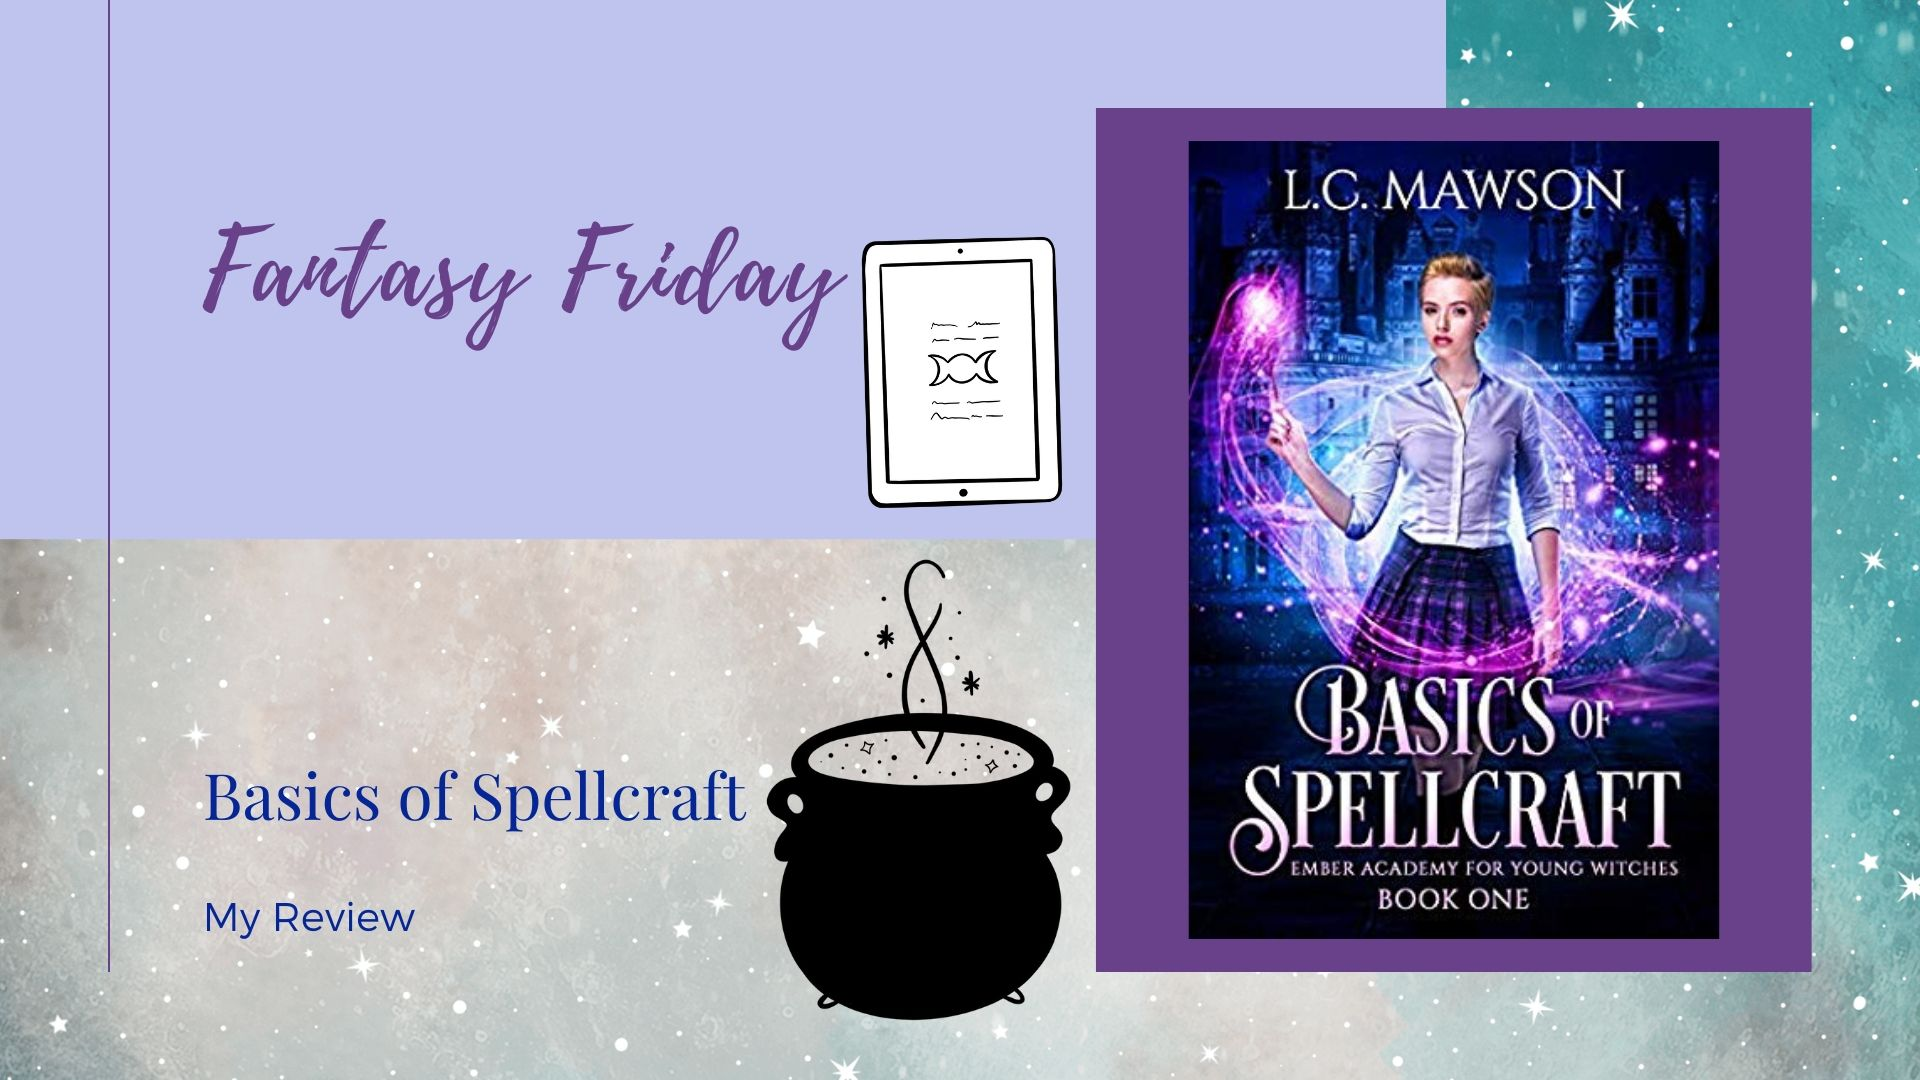 Fantasy Friday: Basics of Spellcraft by L. C. Mawson